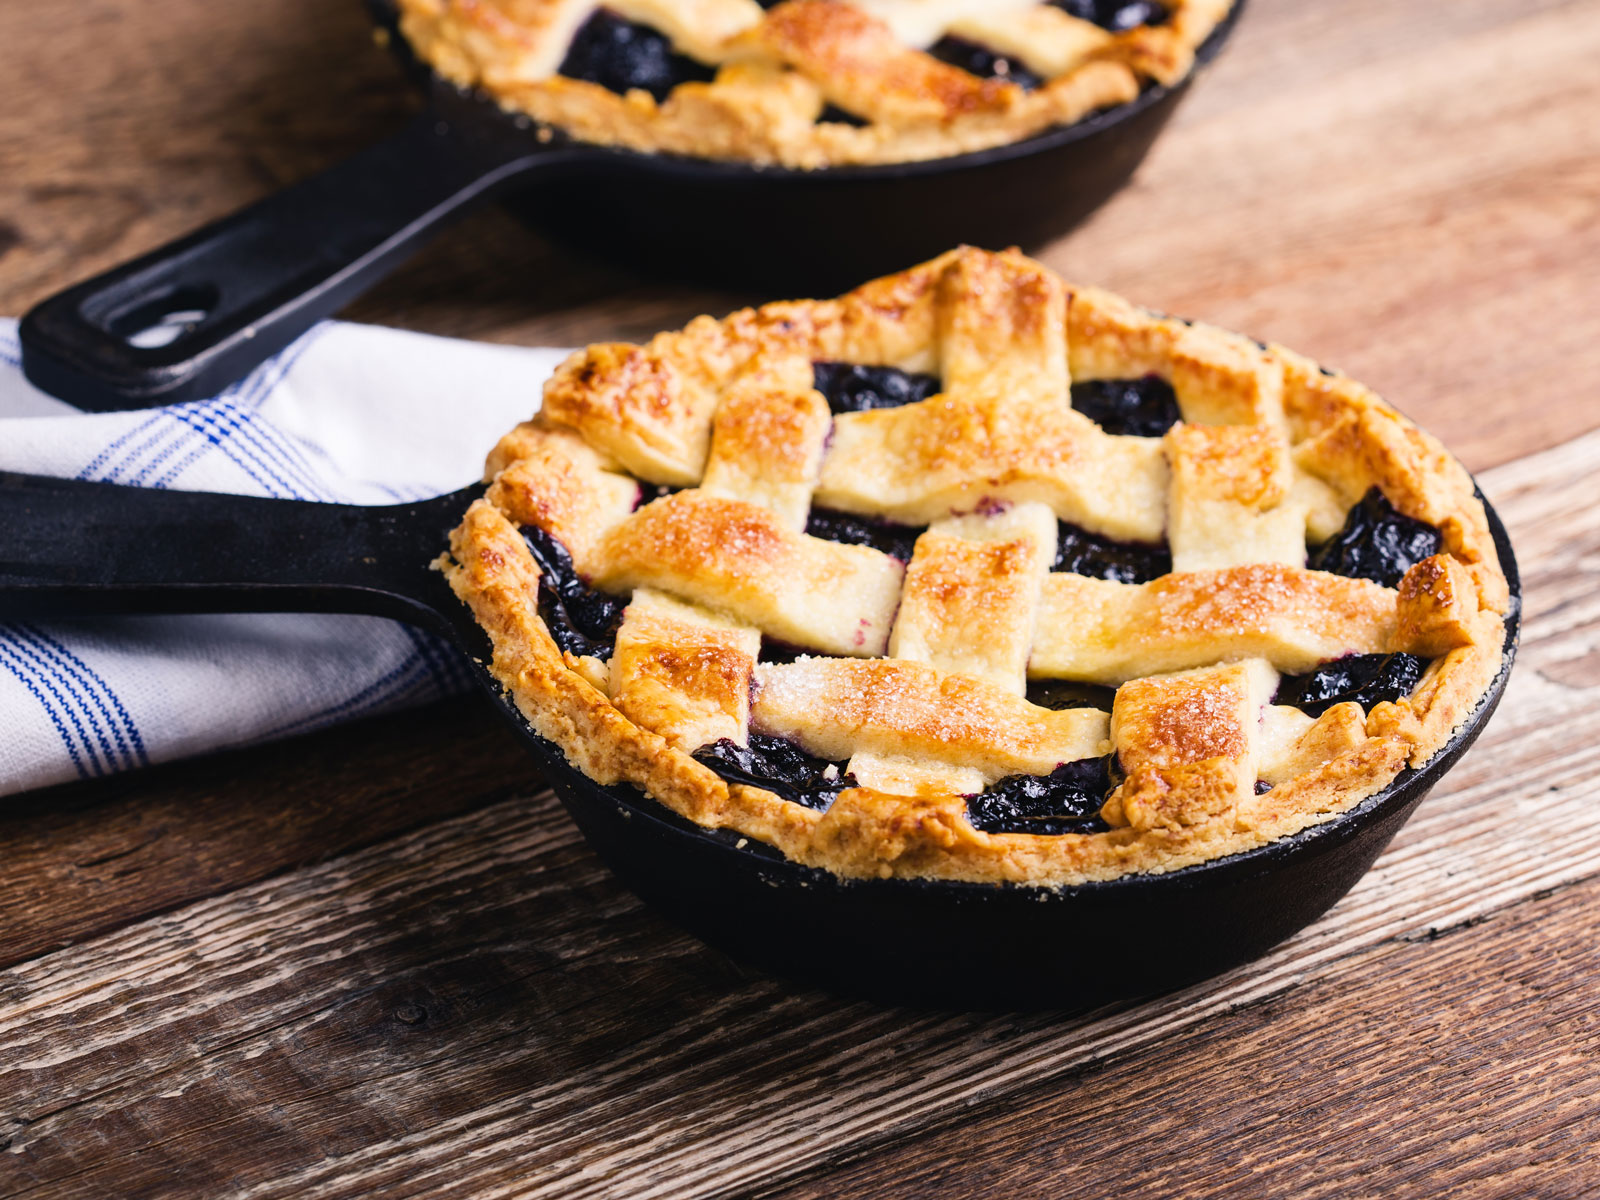 Pi Day: Stop & Shop offers pies for $3.14 on Thursday